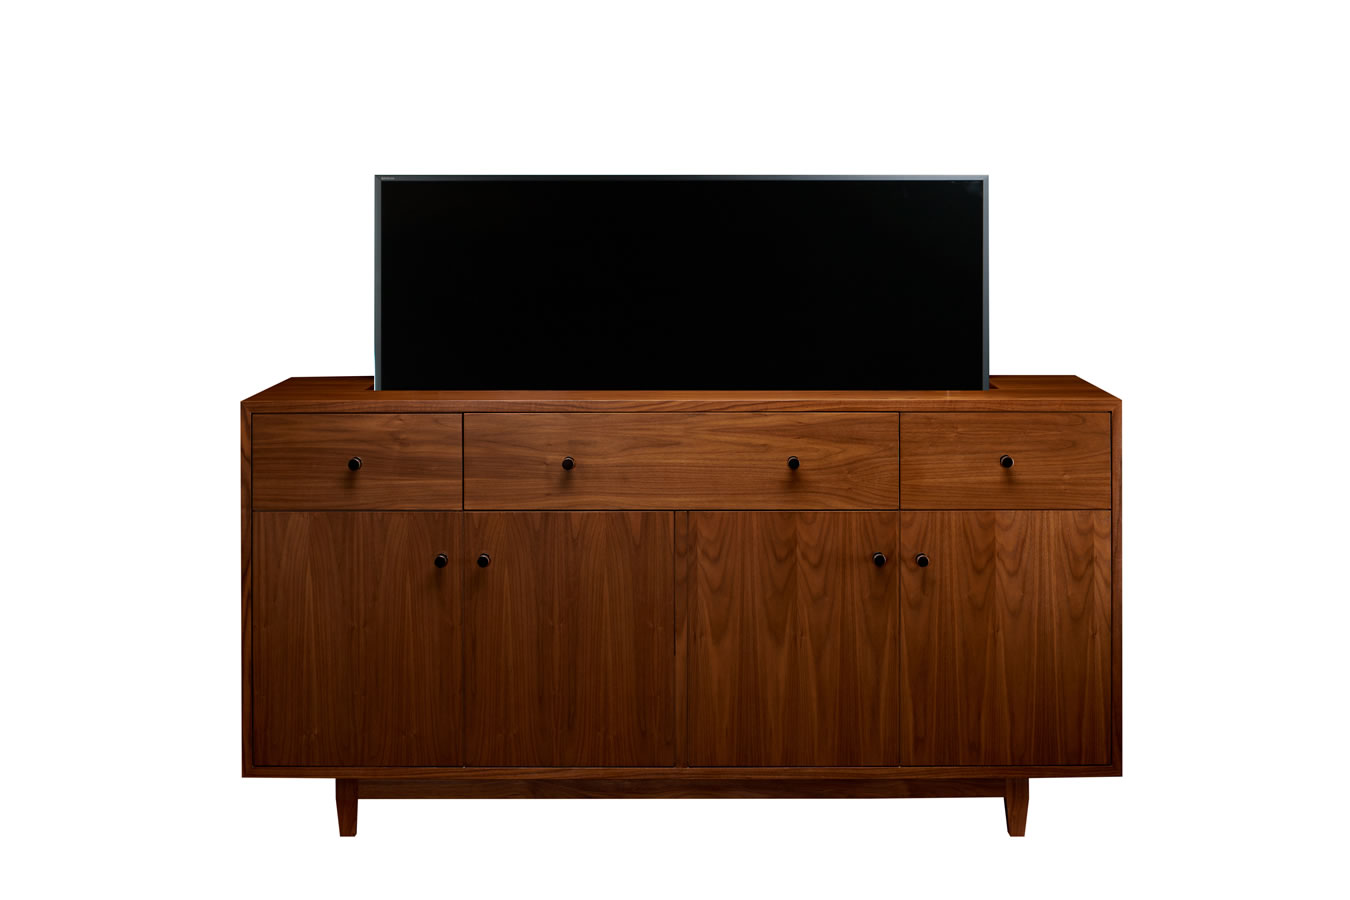 tv lifts archive cabinet tronix. Black Bedroom Furniture Sets. Home Design Ideas